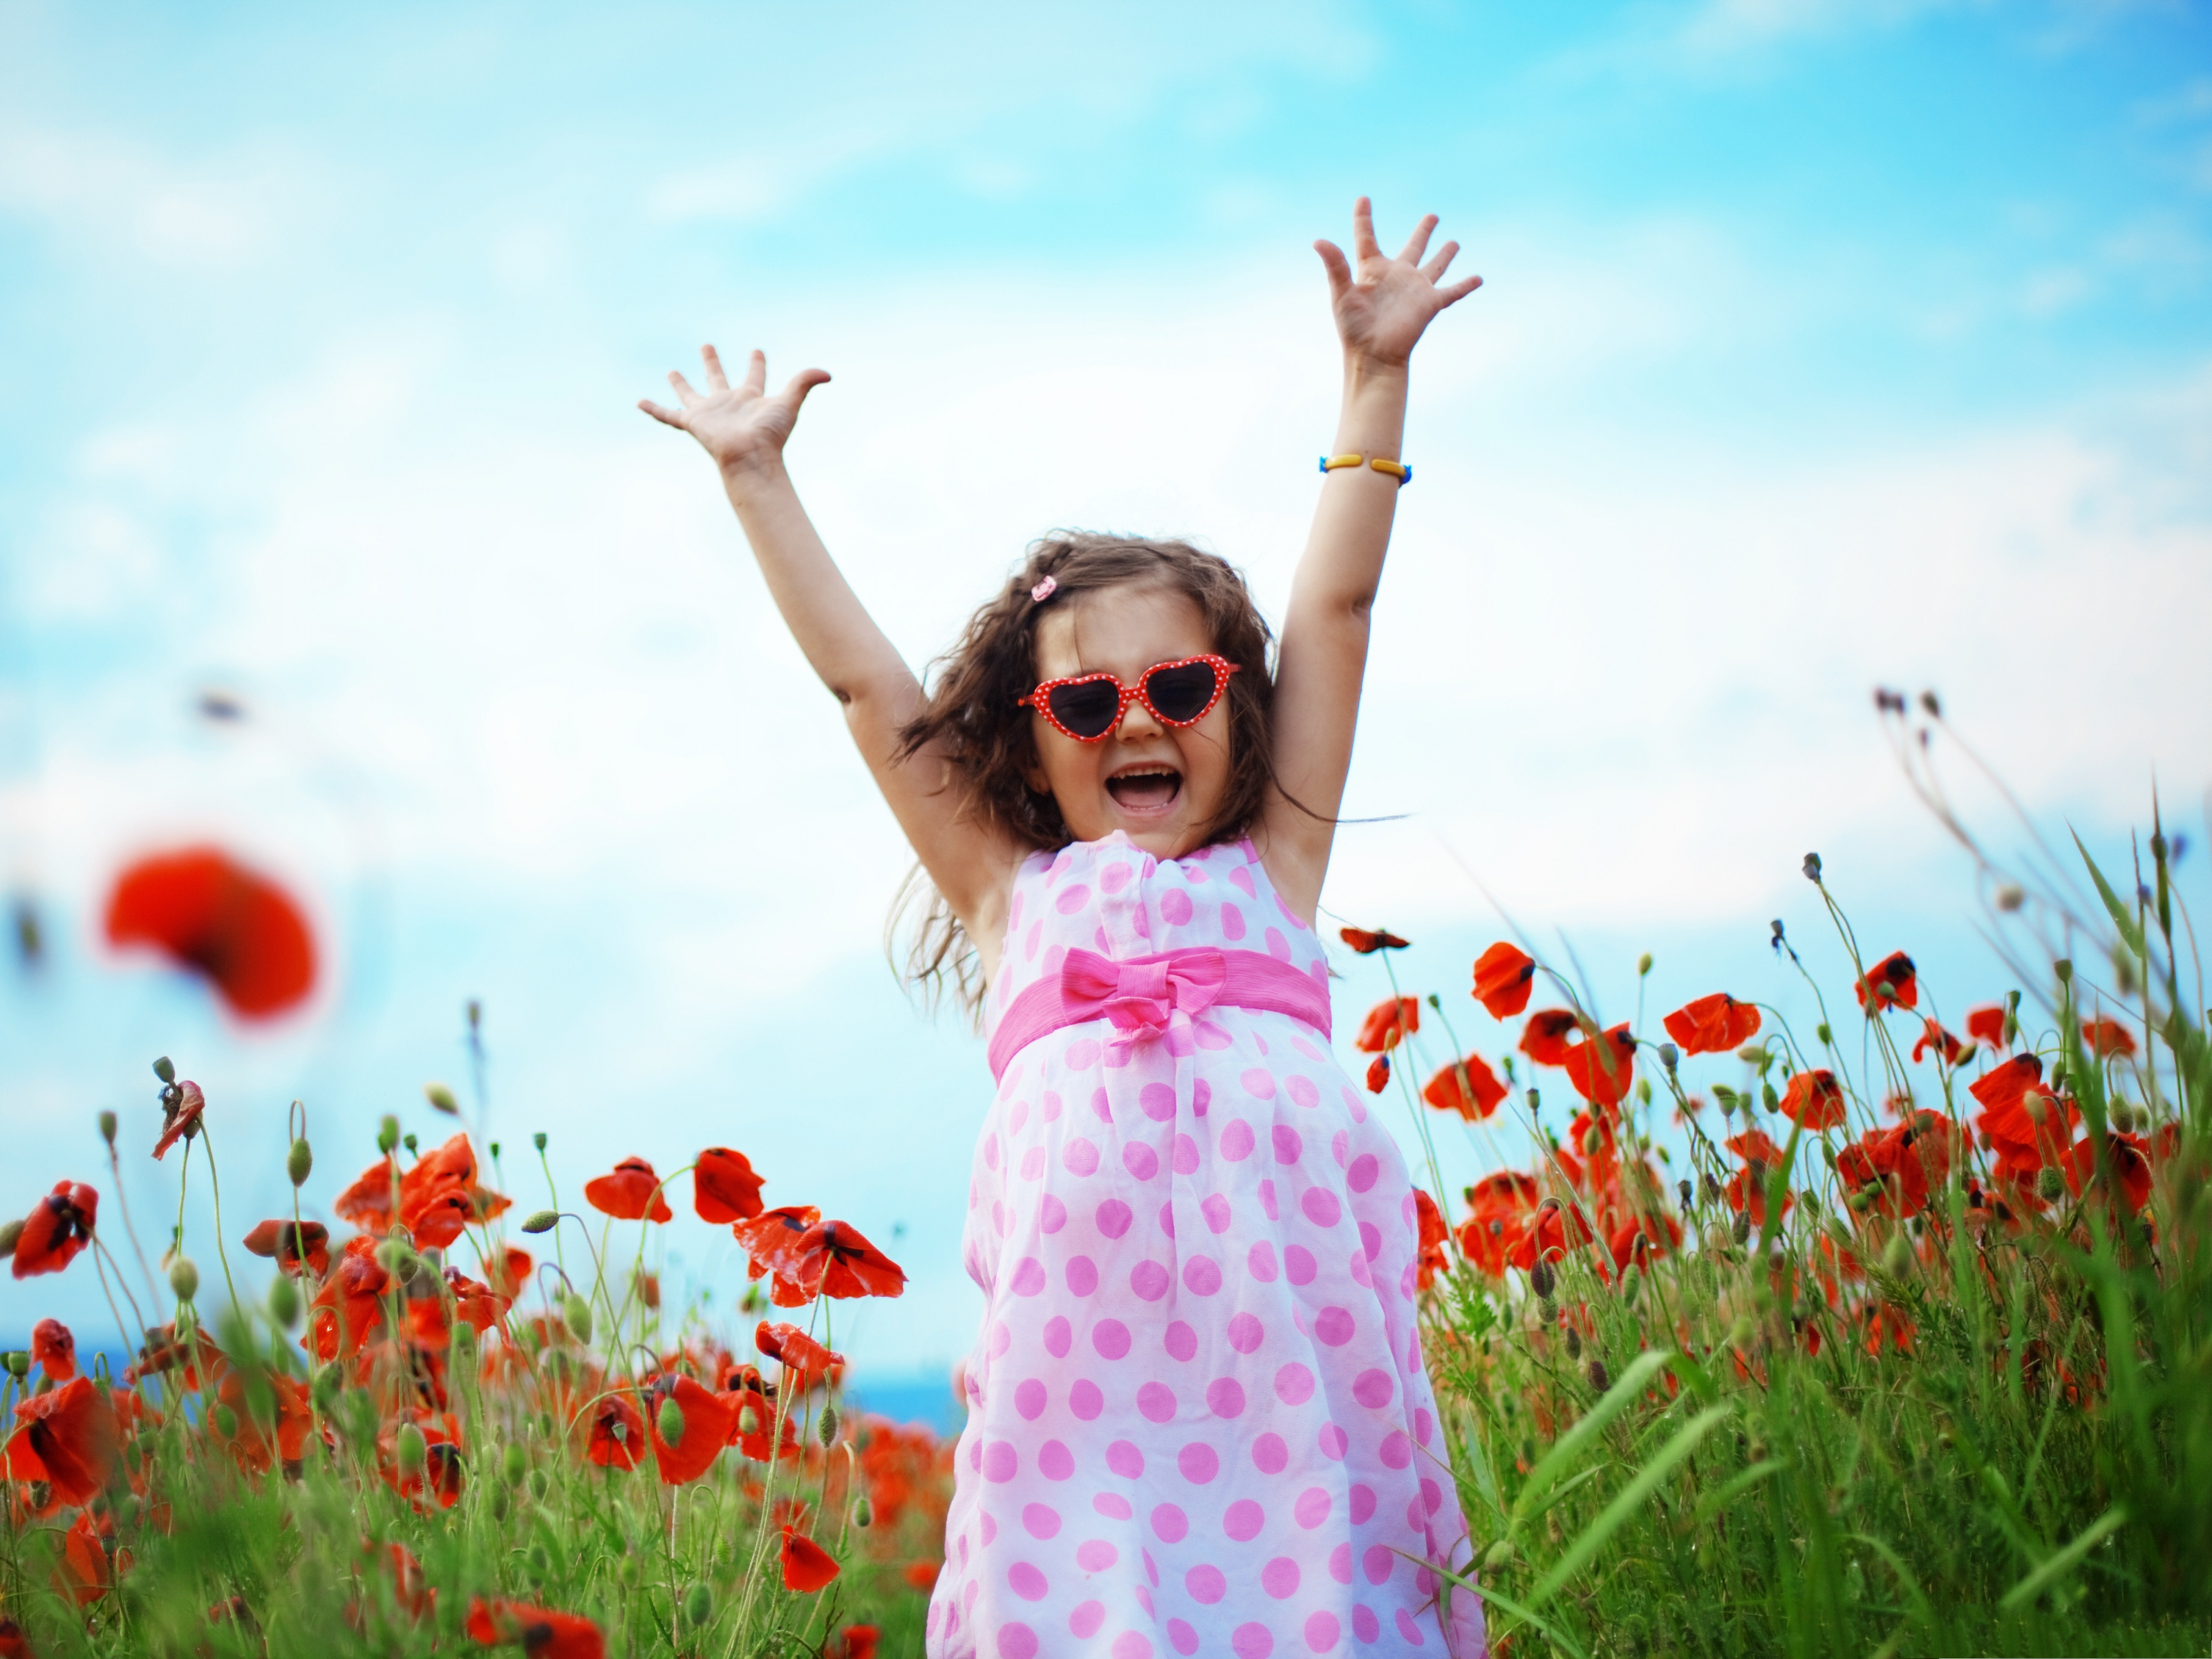 click to free download the wallpaper--Baby Girl Outdoor, Kid in Pink Dress, Surrounded by Red Tulips, Great Mood 3200X2400 free wallpaper download